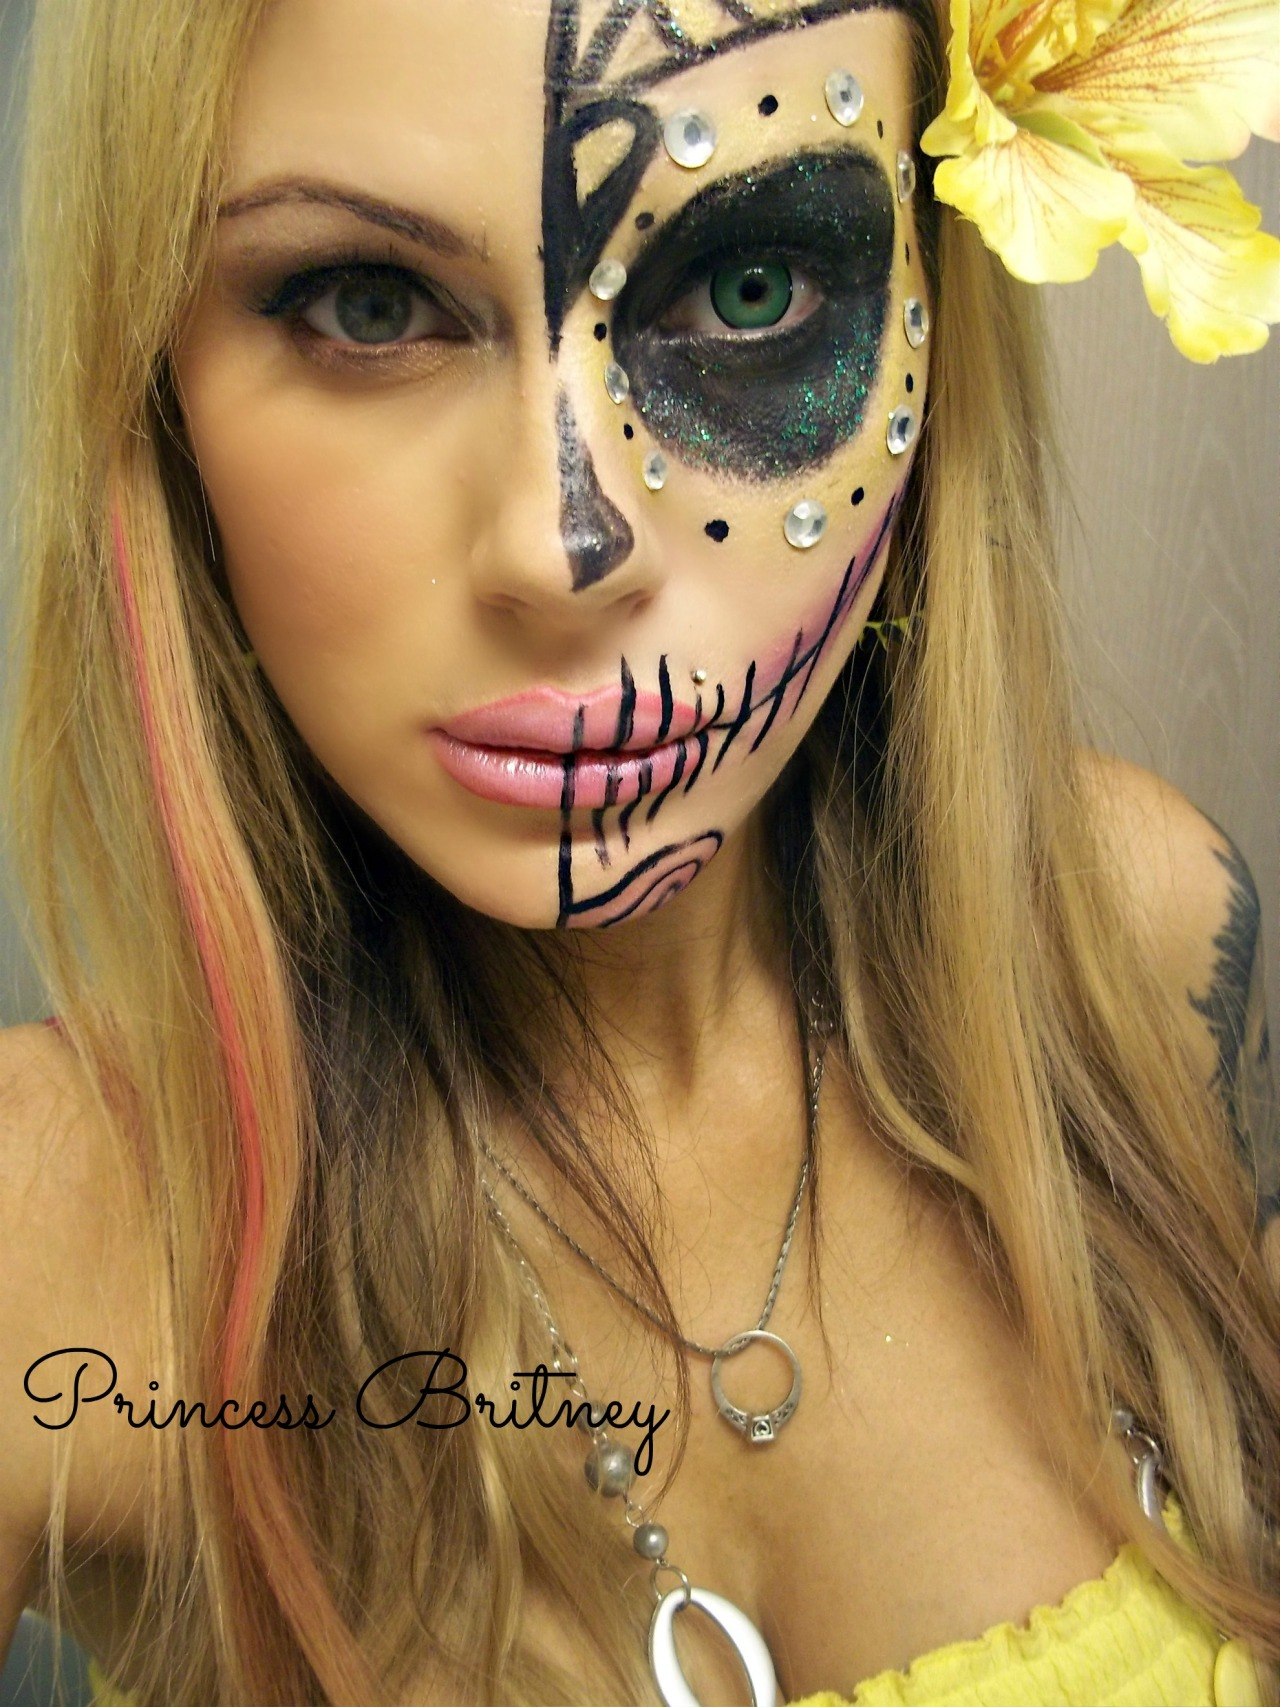 Mygirlfund's Pr1ncessBritney is a living sugar skull. Incredible makeup, incredible photo!